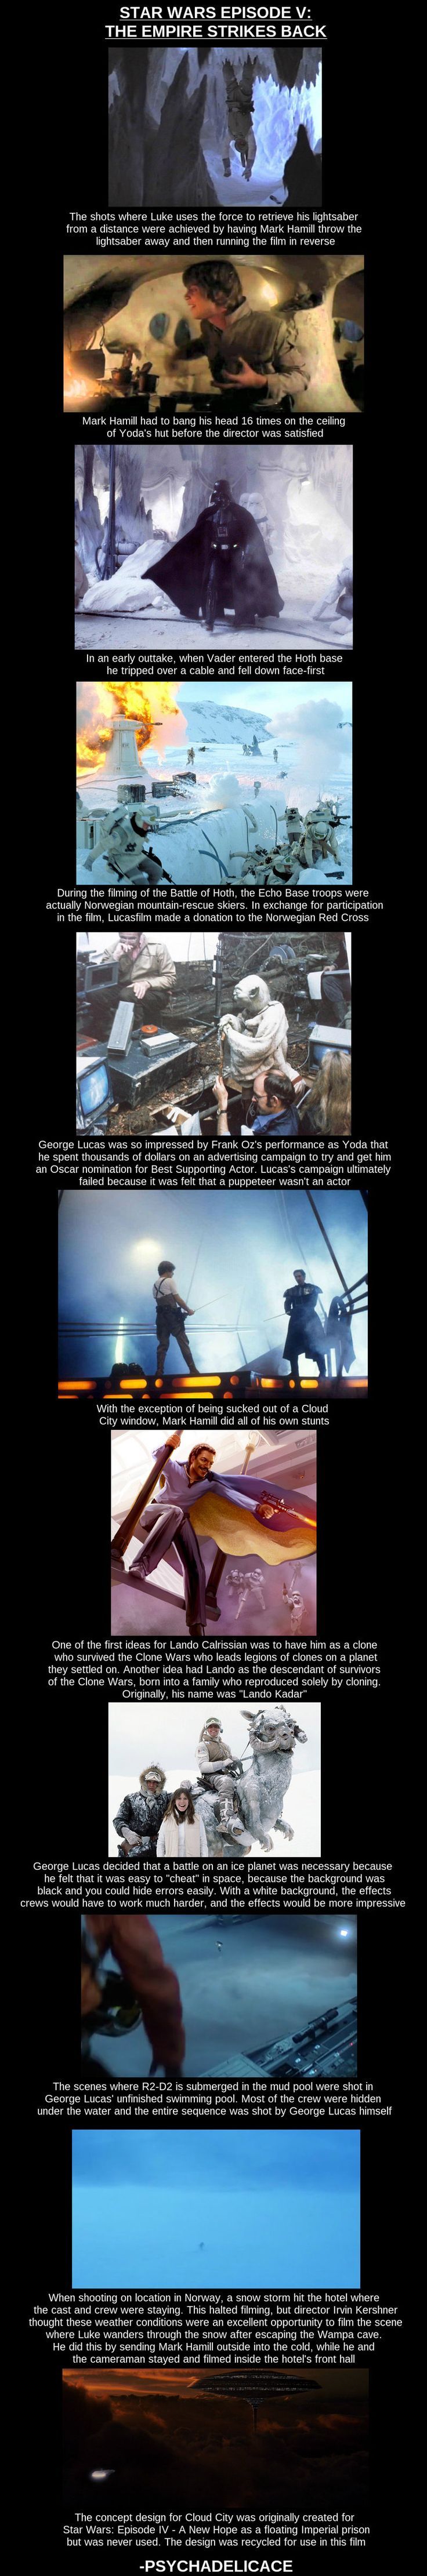 The Empire Strikes Back- behind the scenes facts and stories